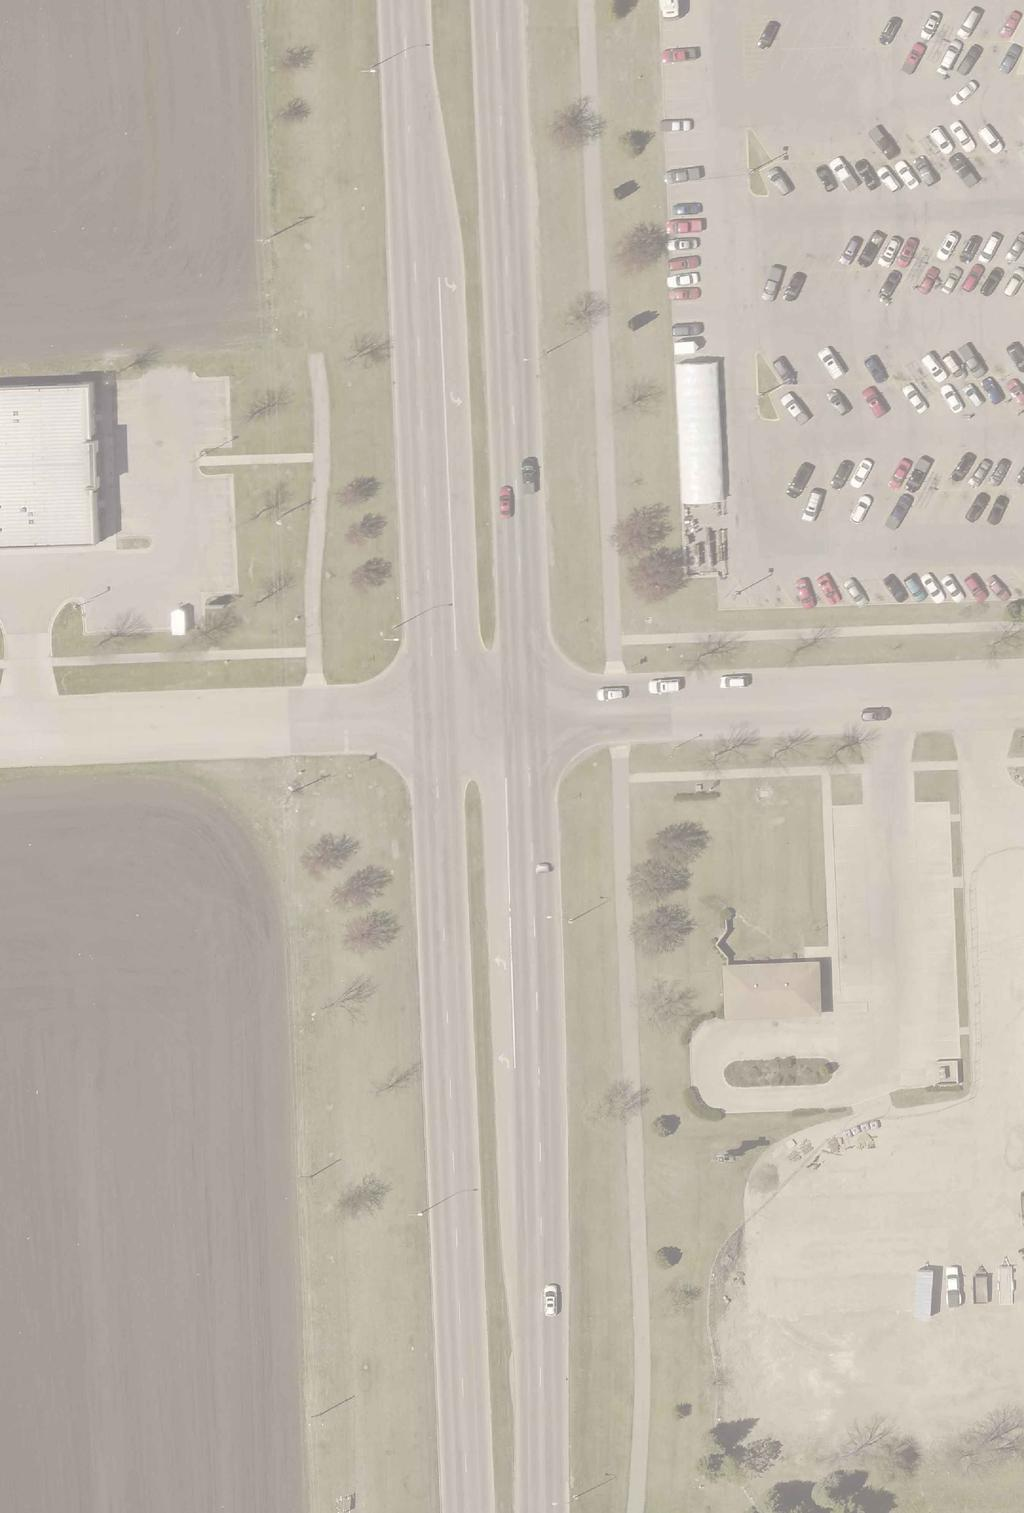 32nd Ave S CITY OF GRAND FORKS ENGINEERING DEPARTMENT 32nd Ave S (Bus US 81) & S 17th St Traffic Signal and Left Turn Lane Realignment S 17th St 187' Matching Existing Taper New Lane Striping New